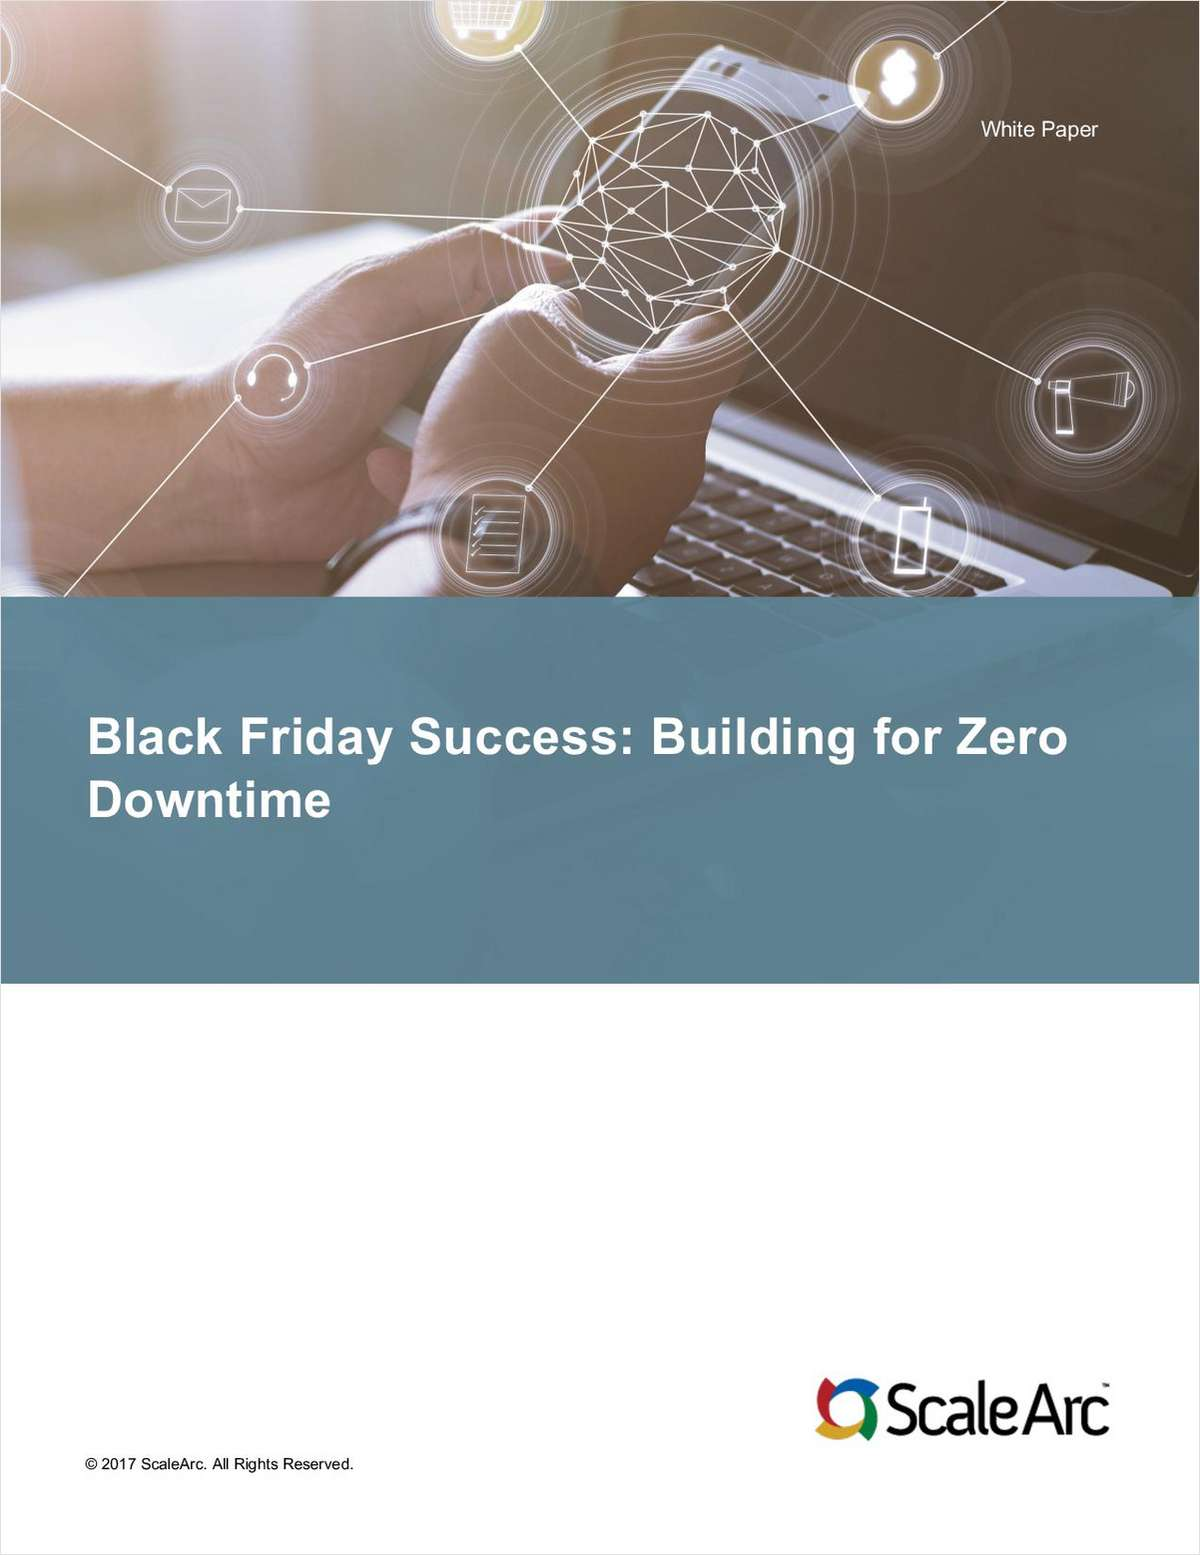 Black Friday Success - Building for Zero Downtime